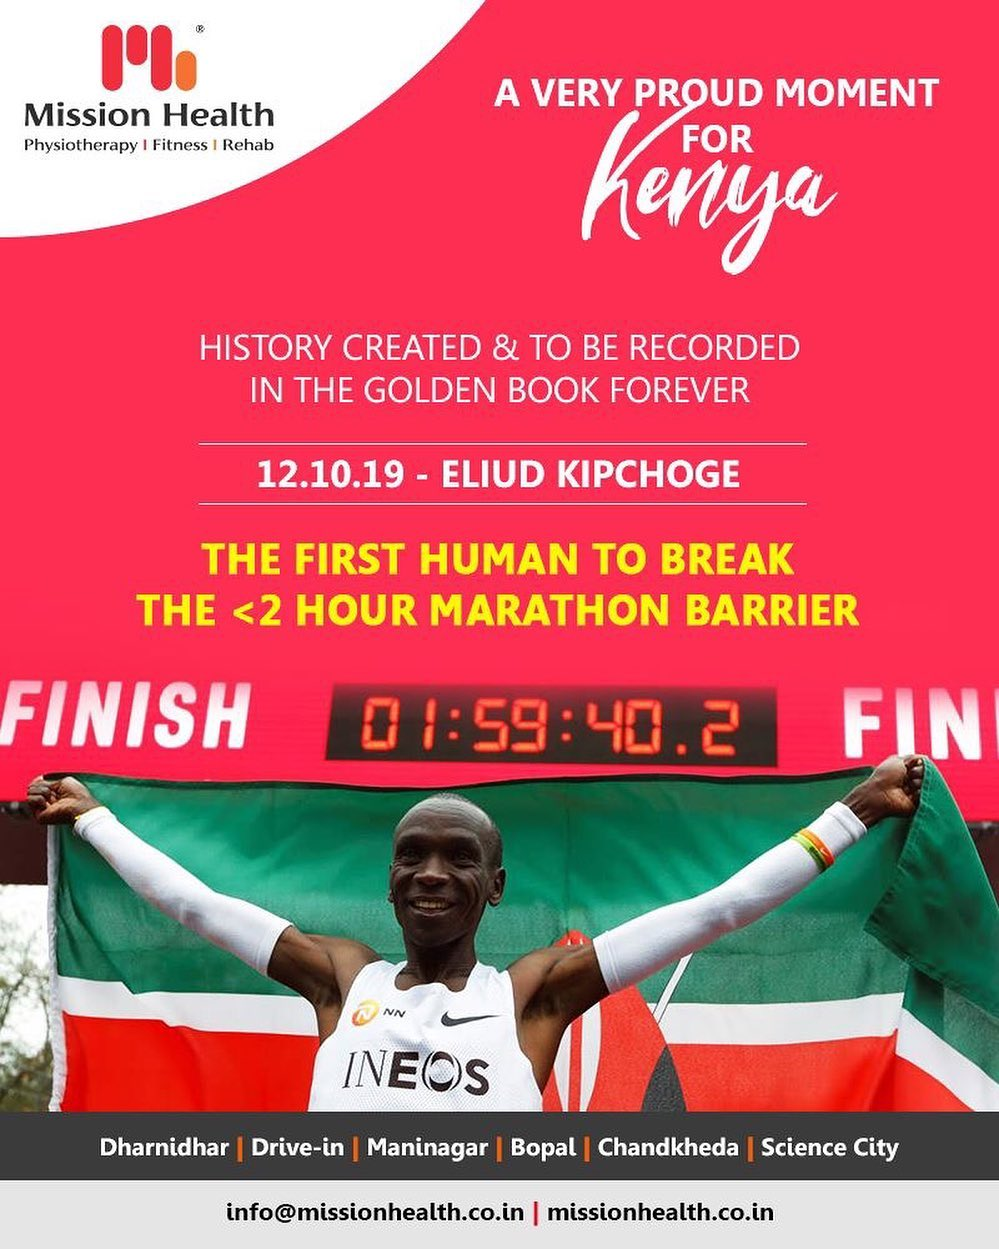 History created & to be recorded in the golden book forever.  #Kenya #ProudMoments #MissionHealth #MissionHealthIndia #fitnessgoals #MovementIsLife #PersonalTraining #weightmanagement #fitness